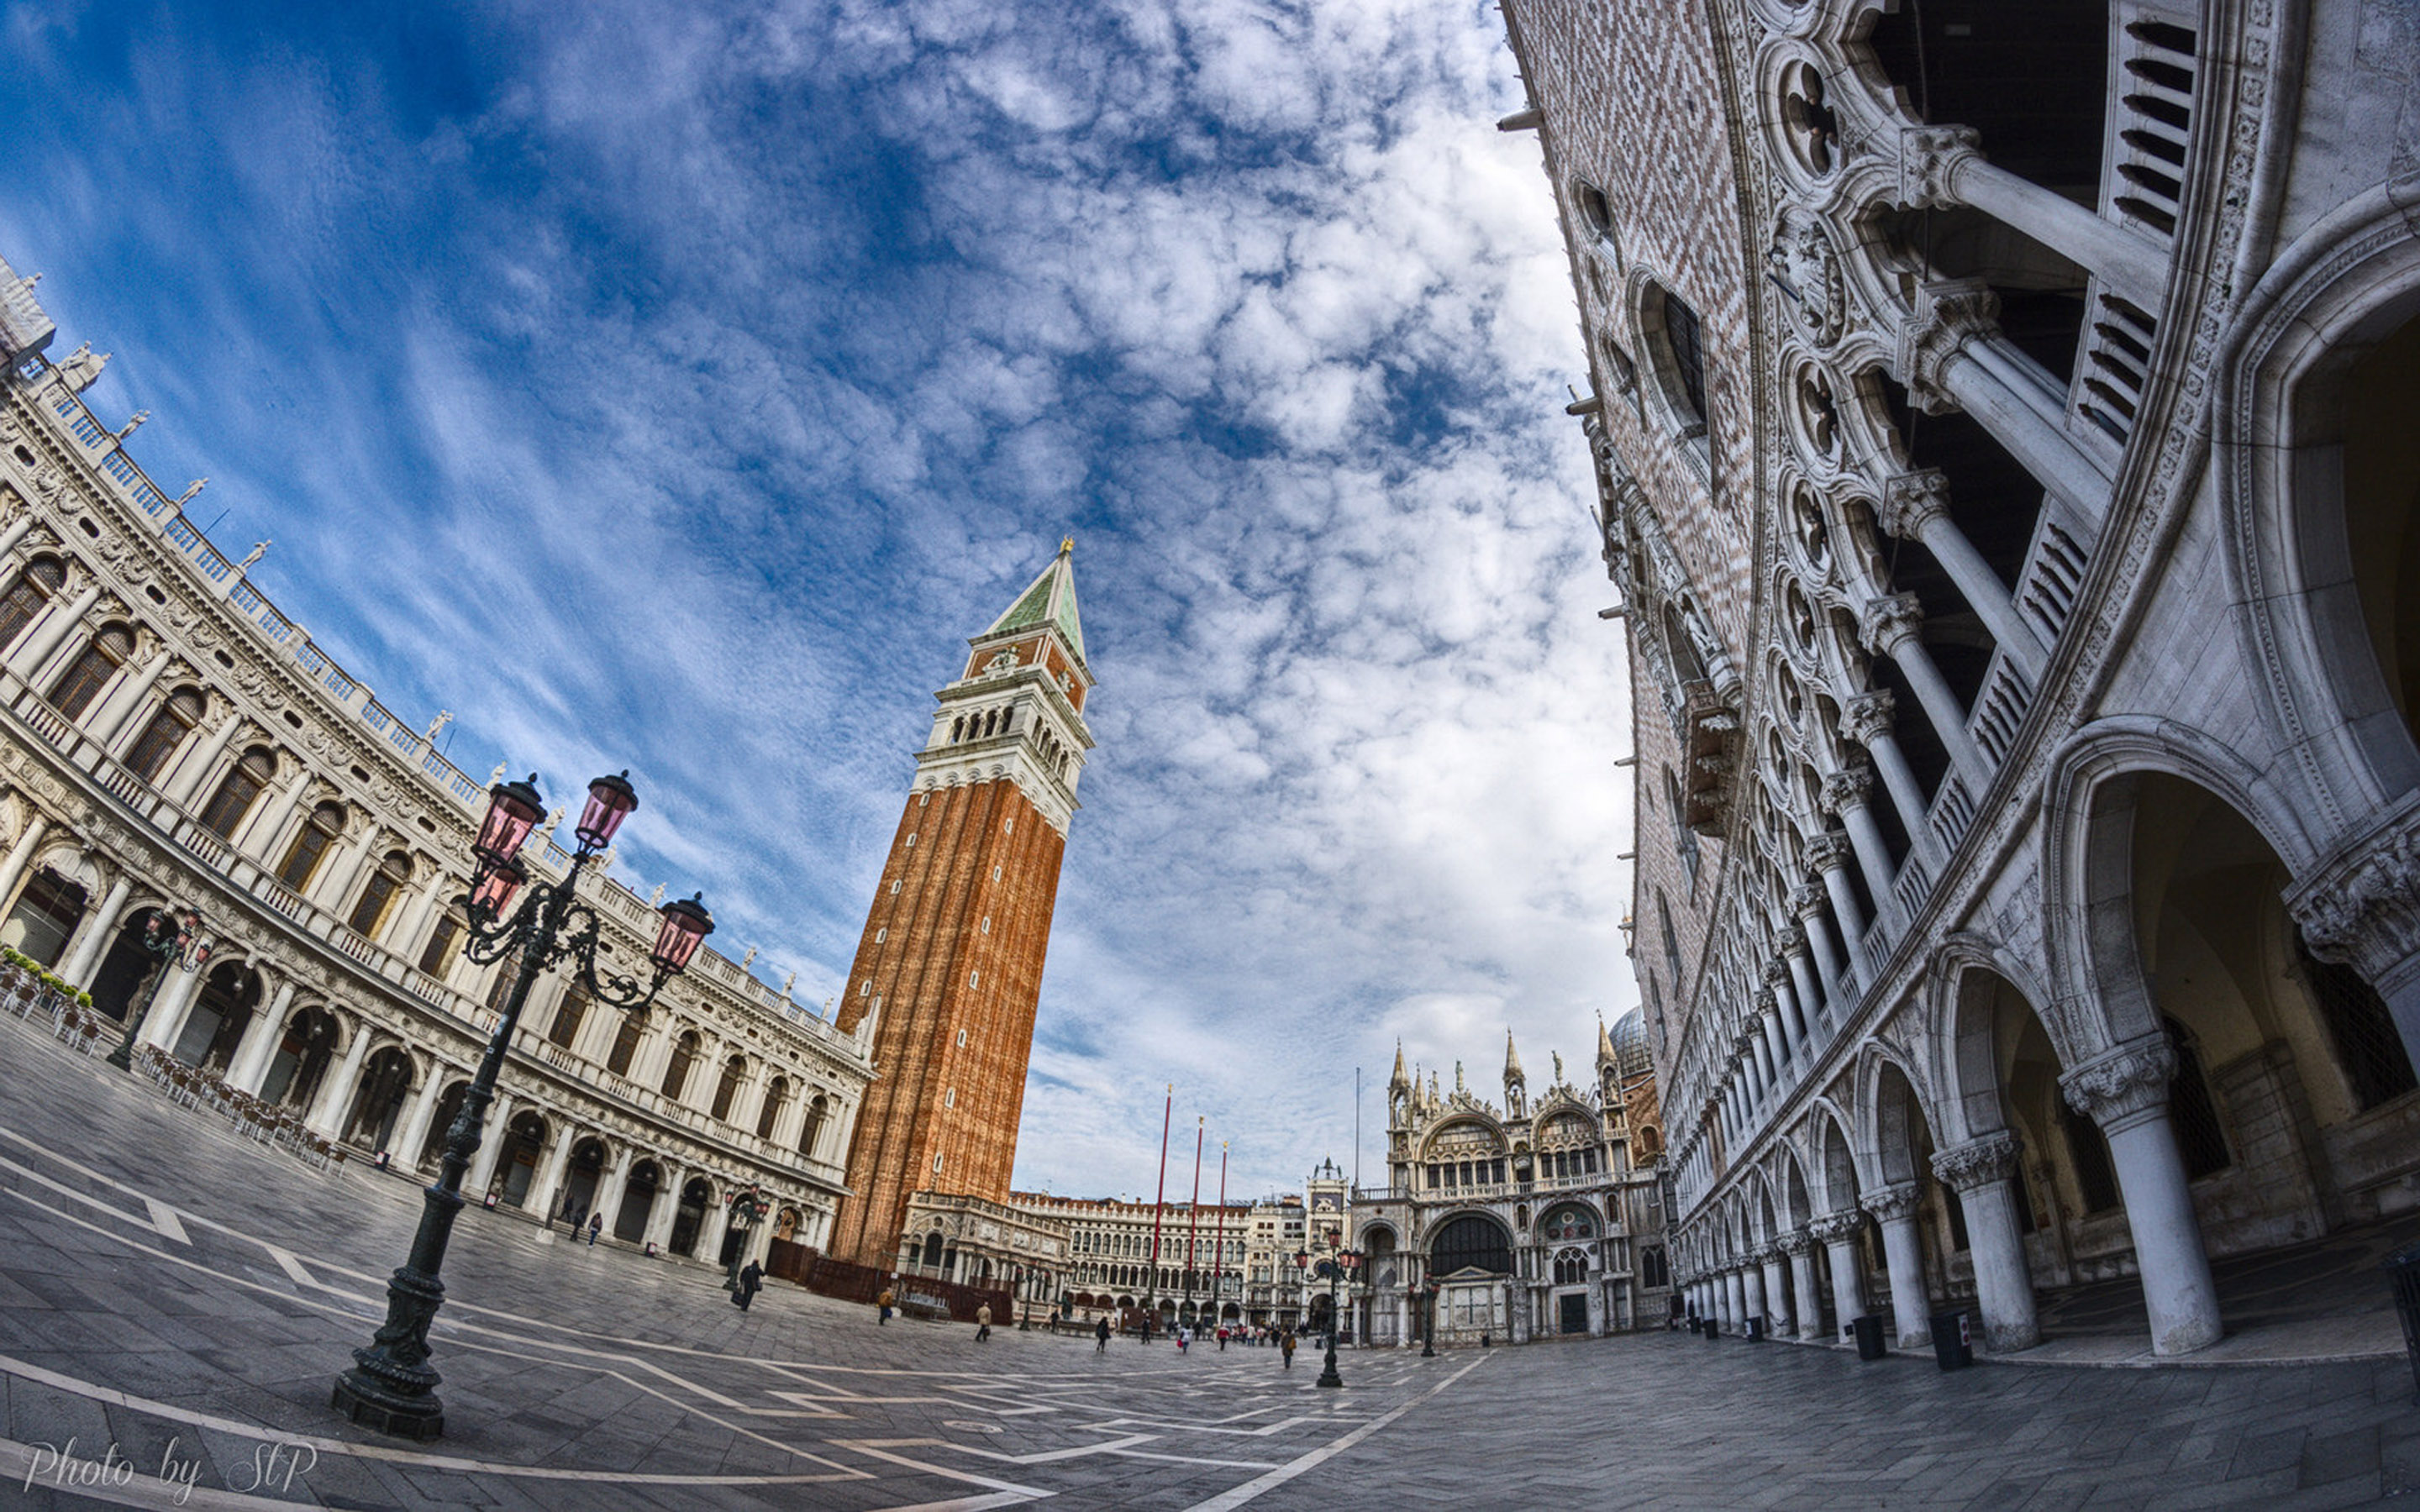 Summer Iphone 5 Wallpaper Venice Italy Piazza San Marco Wallpaper Widescreen Hd